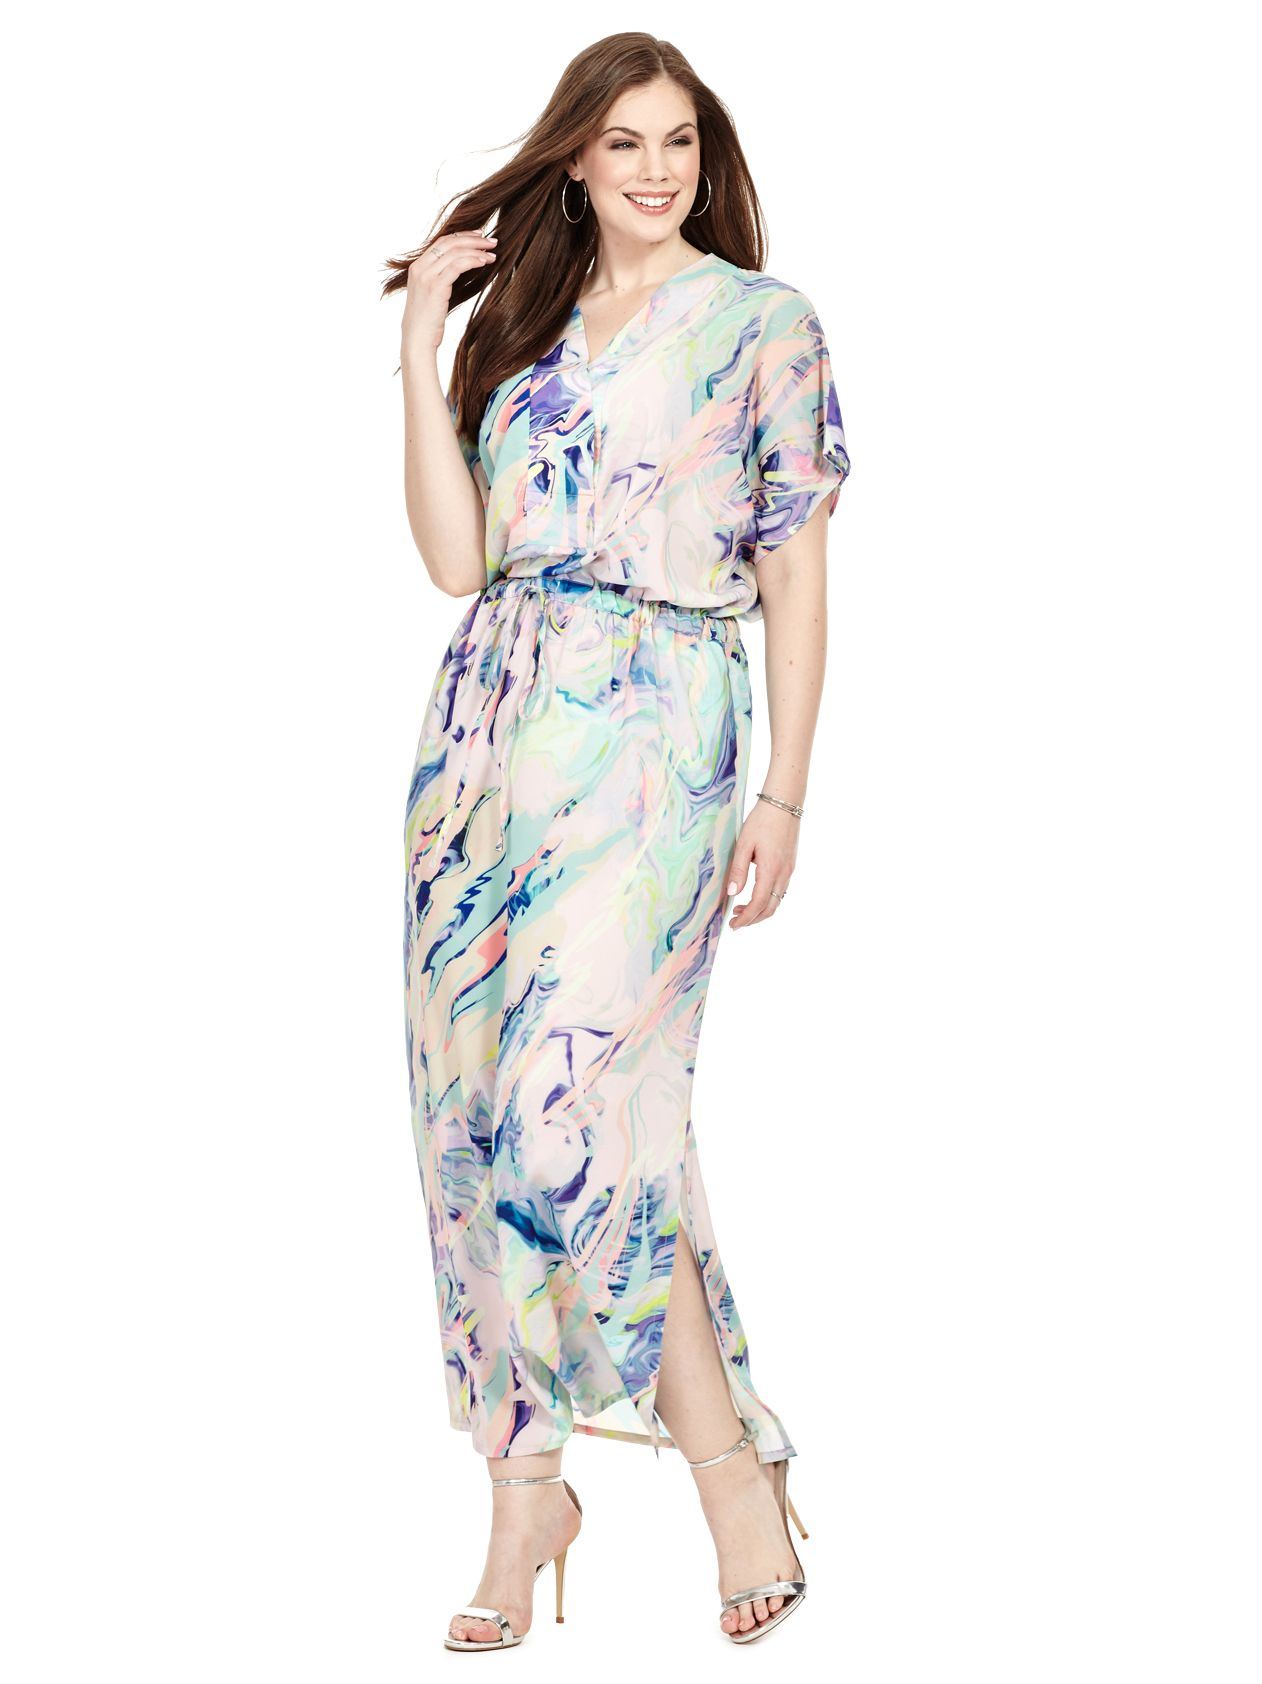 Pastel Printed Drawstring Maxi Dress By Isabel Alice Available In Sizes L Xl And 1x 5x Drawstring Maxi Dress Maxi Dress Dresses With Leggings [ 1684 x 1262 Pixel ]